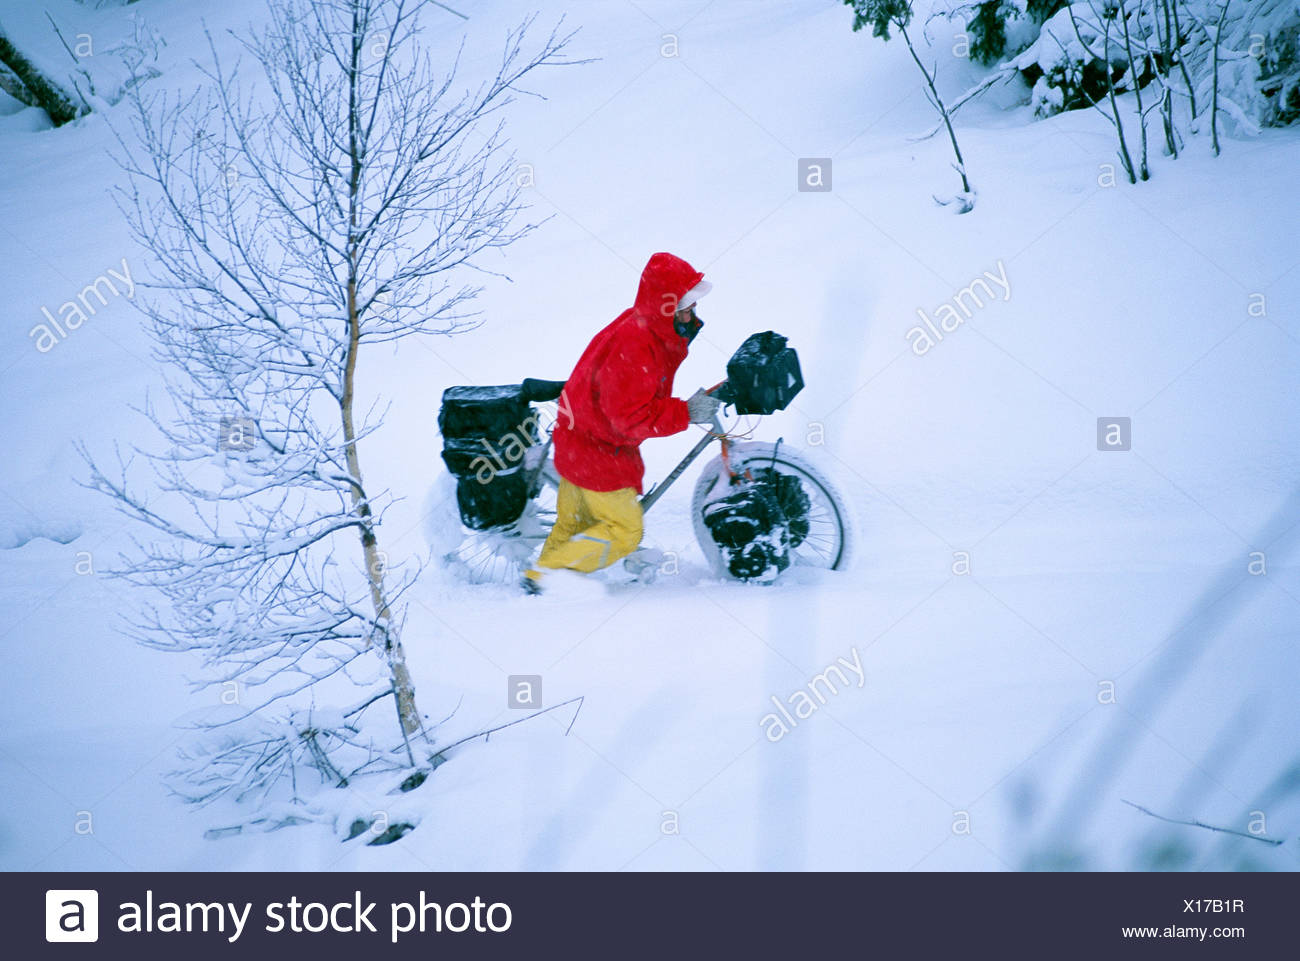 A woman walking with a bike in deep snow Sweden - Stock Image